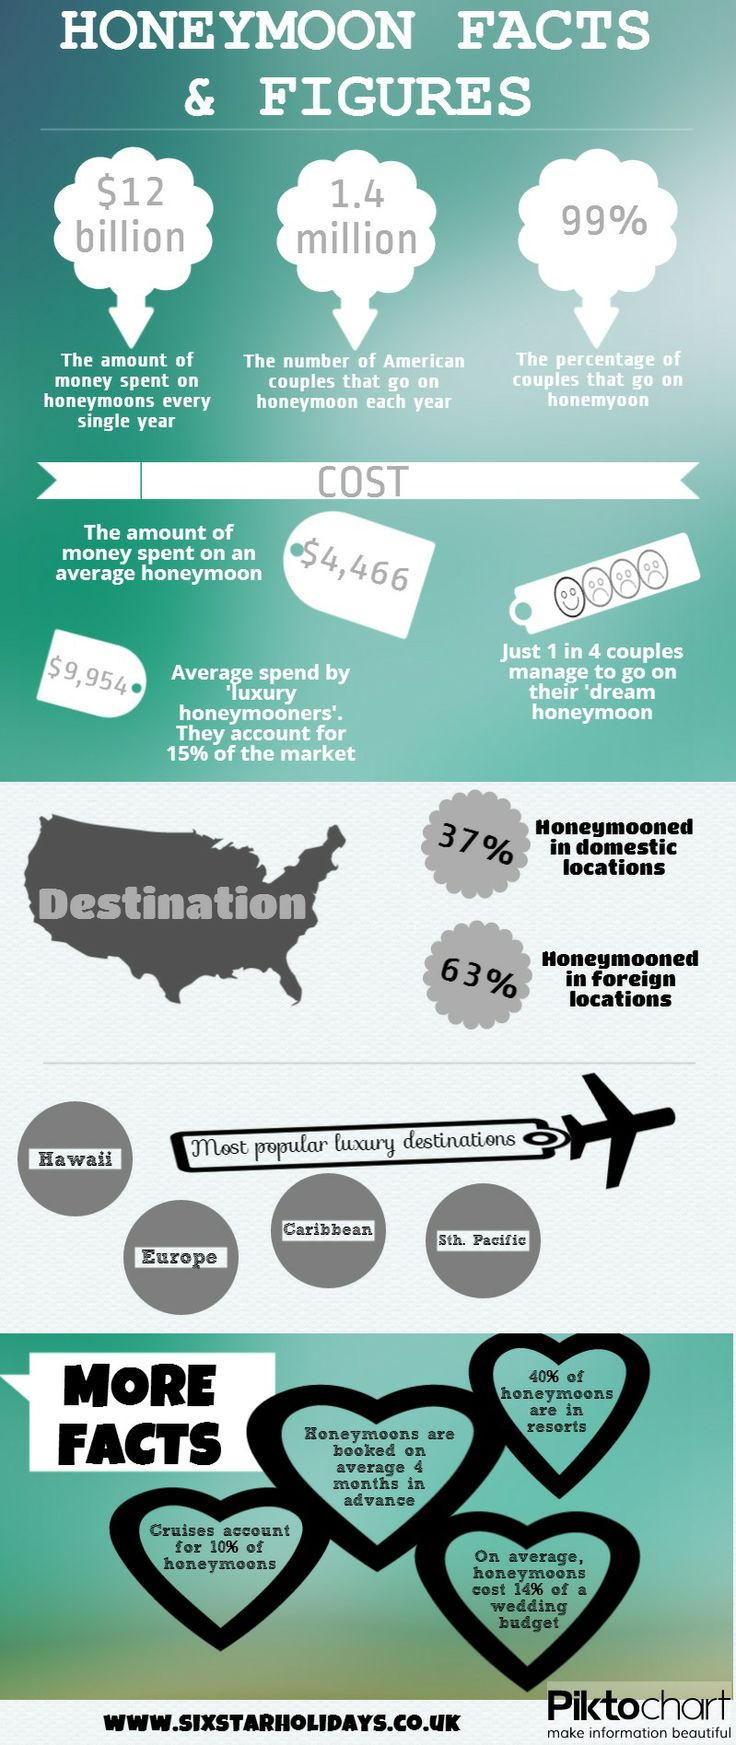 A break down of all the important facts and figures about honeymoons.